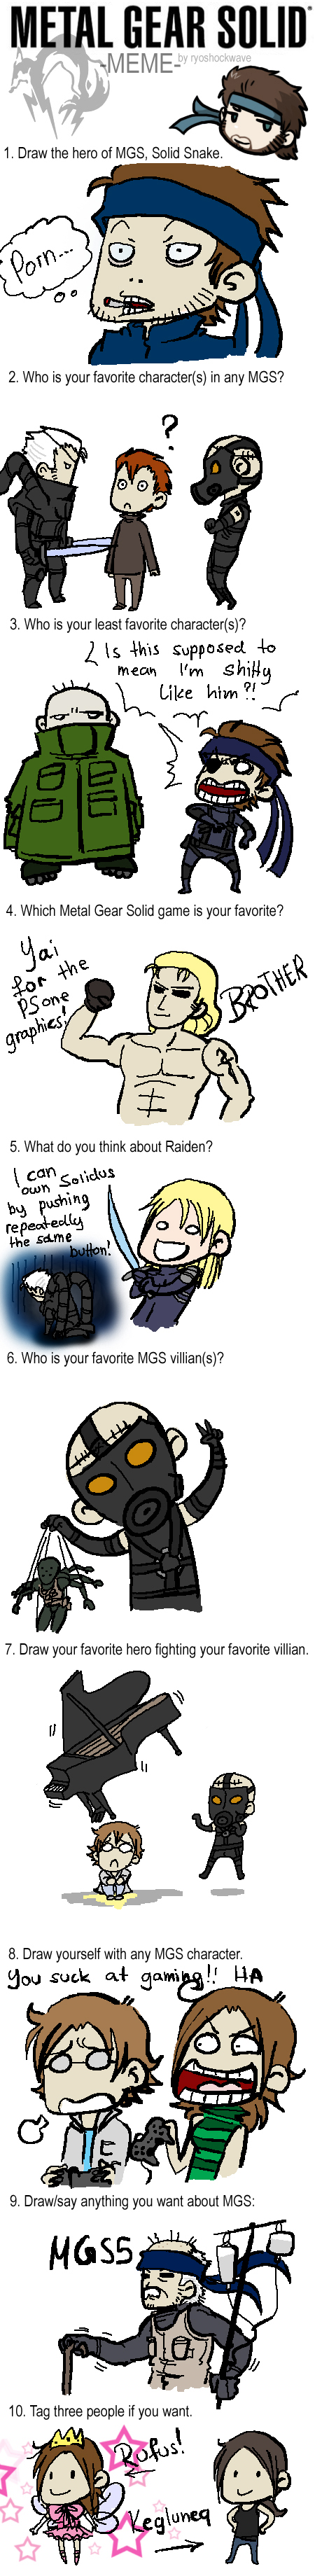 second MGS Meme 8D by Voxsound